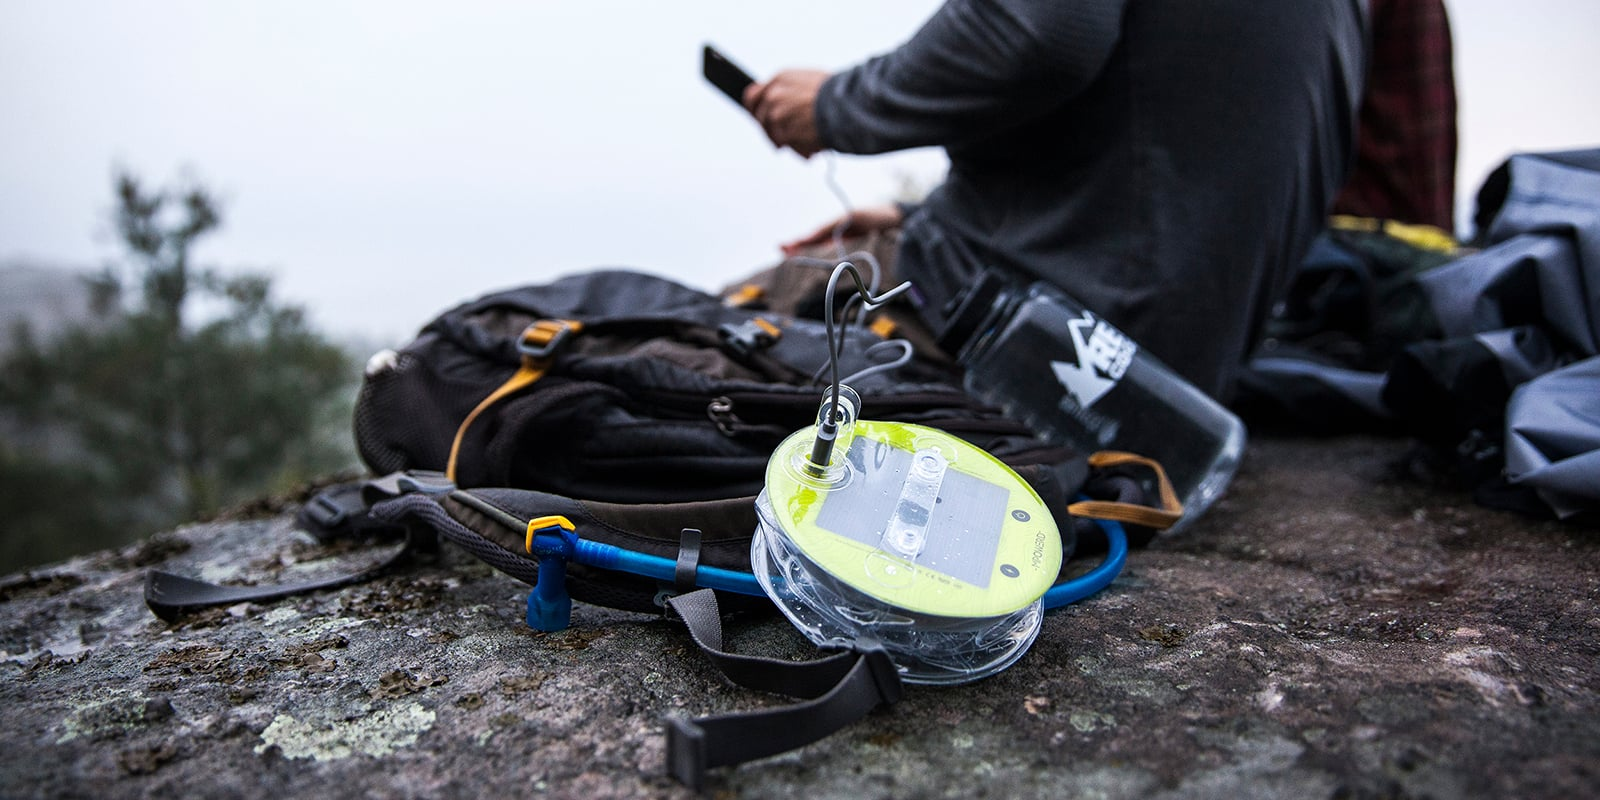 The Backpack Electricity System